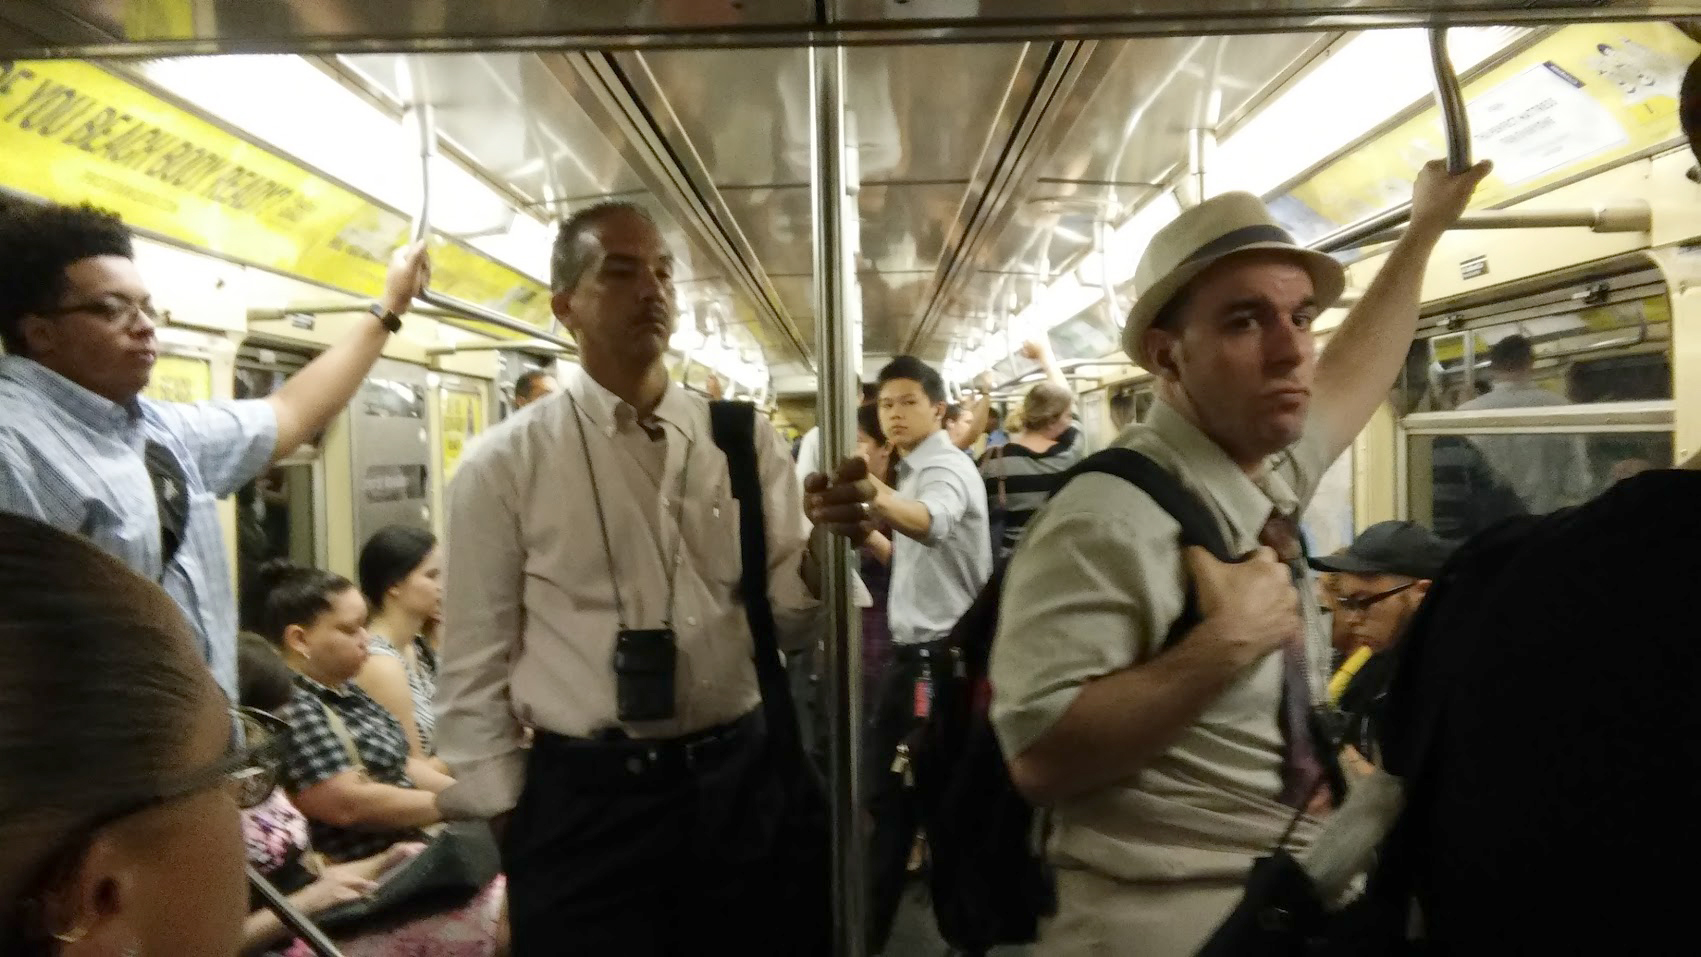 Observations on a crowded subway train